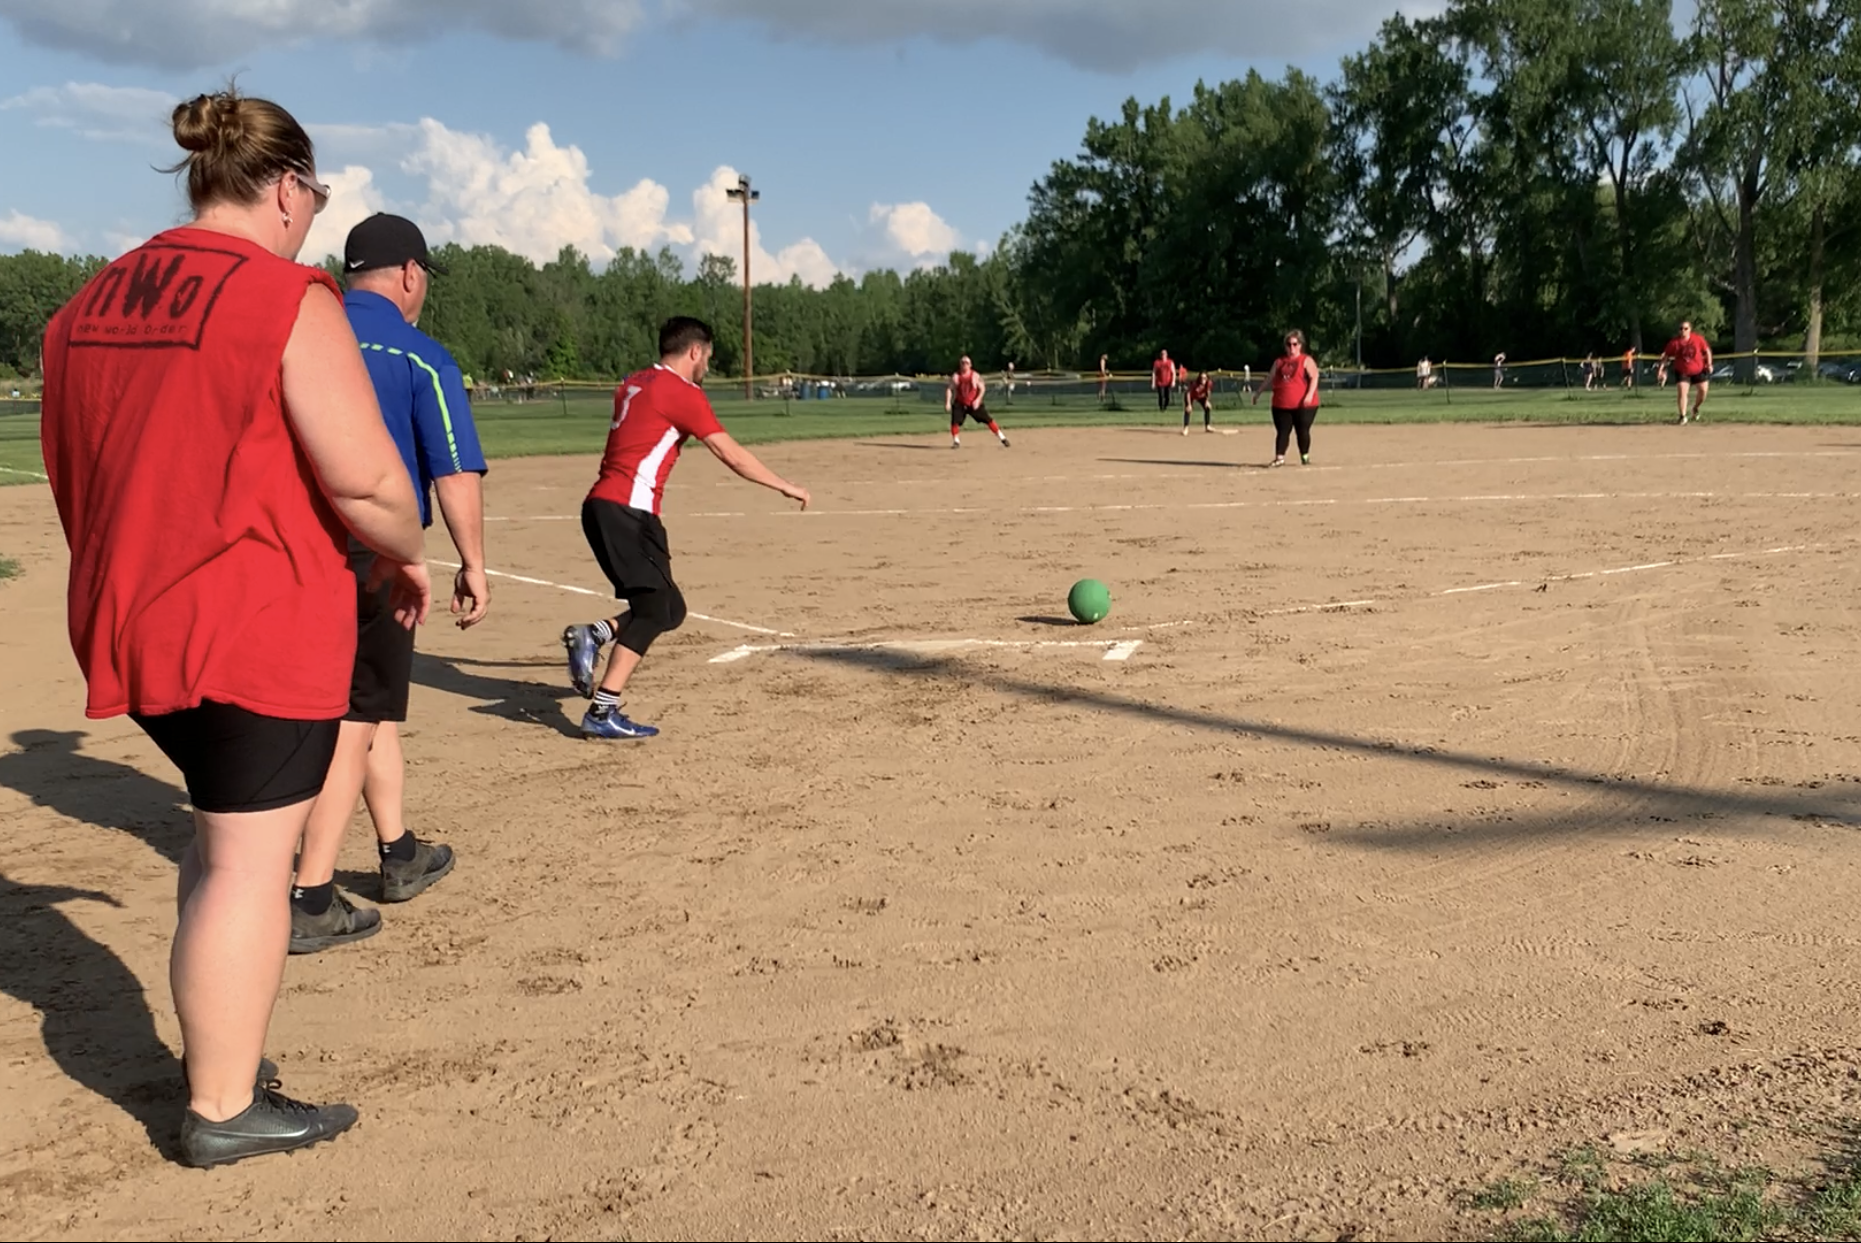 The Syracuse Sports Association started as a kickball league and the sport remains the league's most popular attraction. Teams meet on four fields in Liverpool, New York, in the spring, summer and fall.